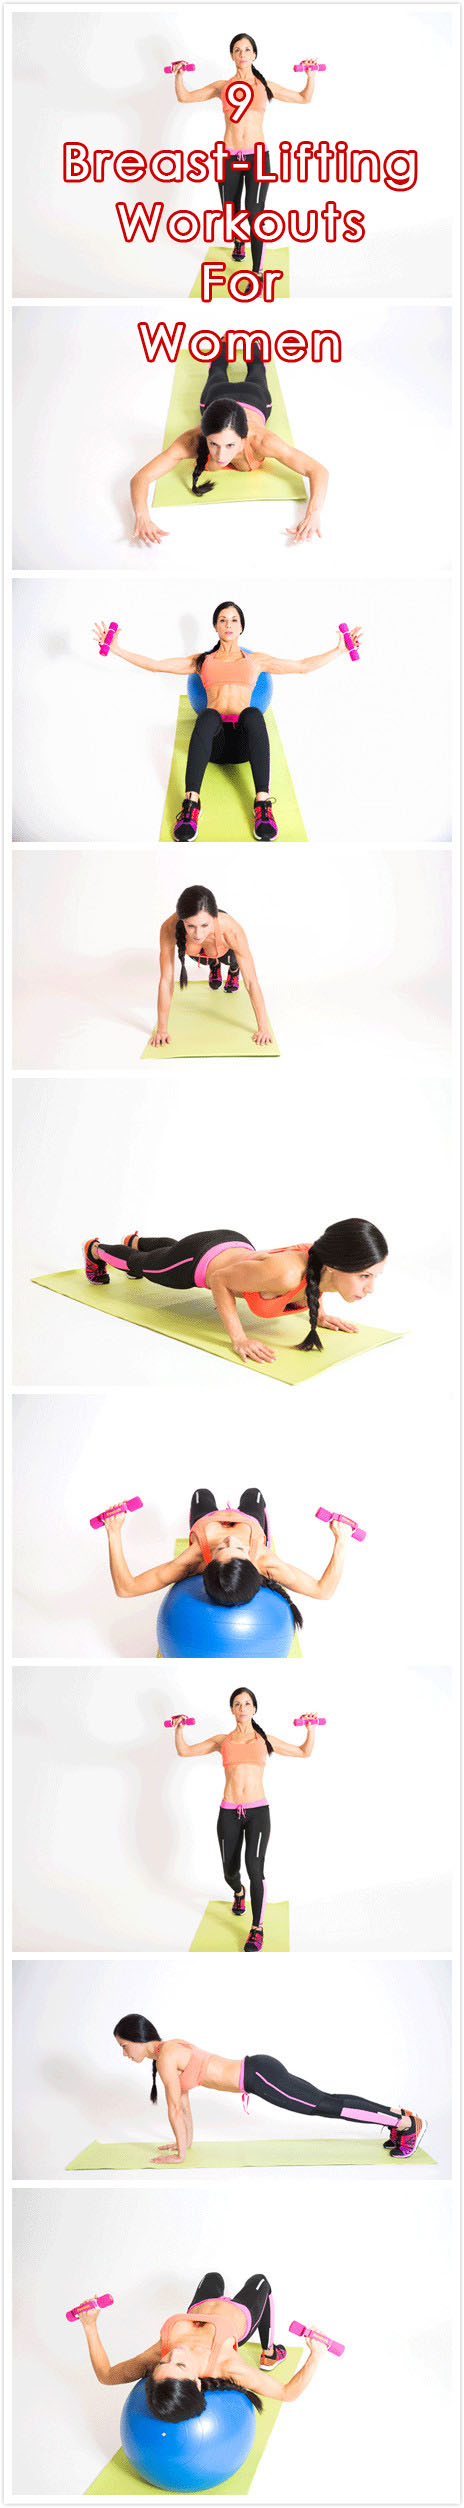 9-chest-workouts-for-women